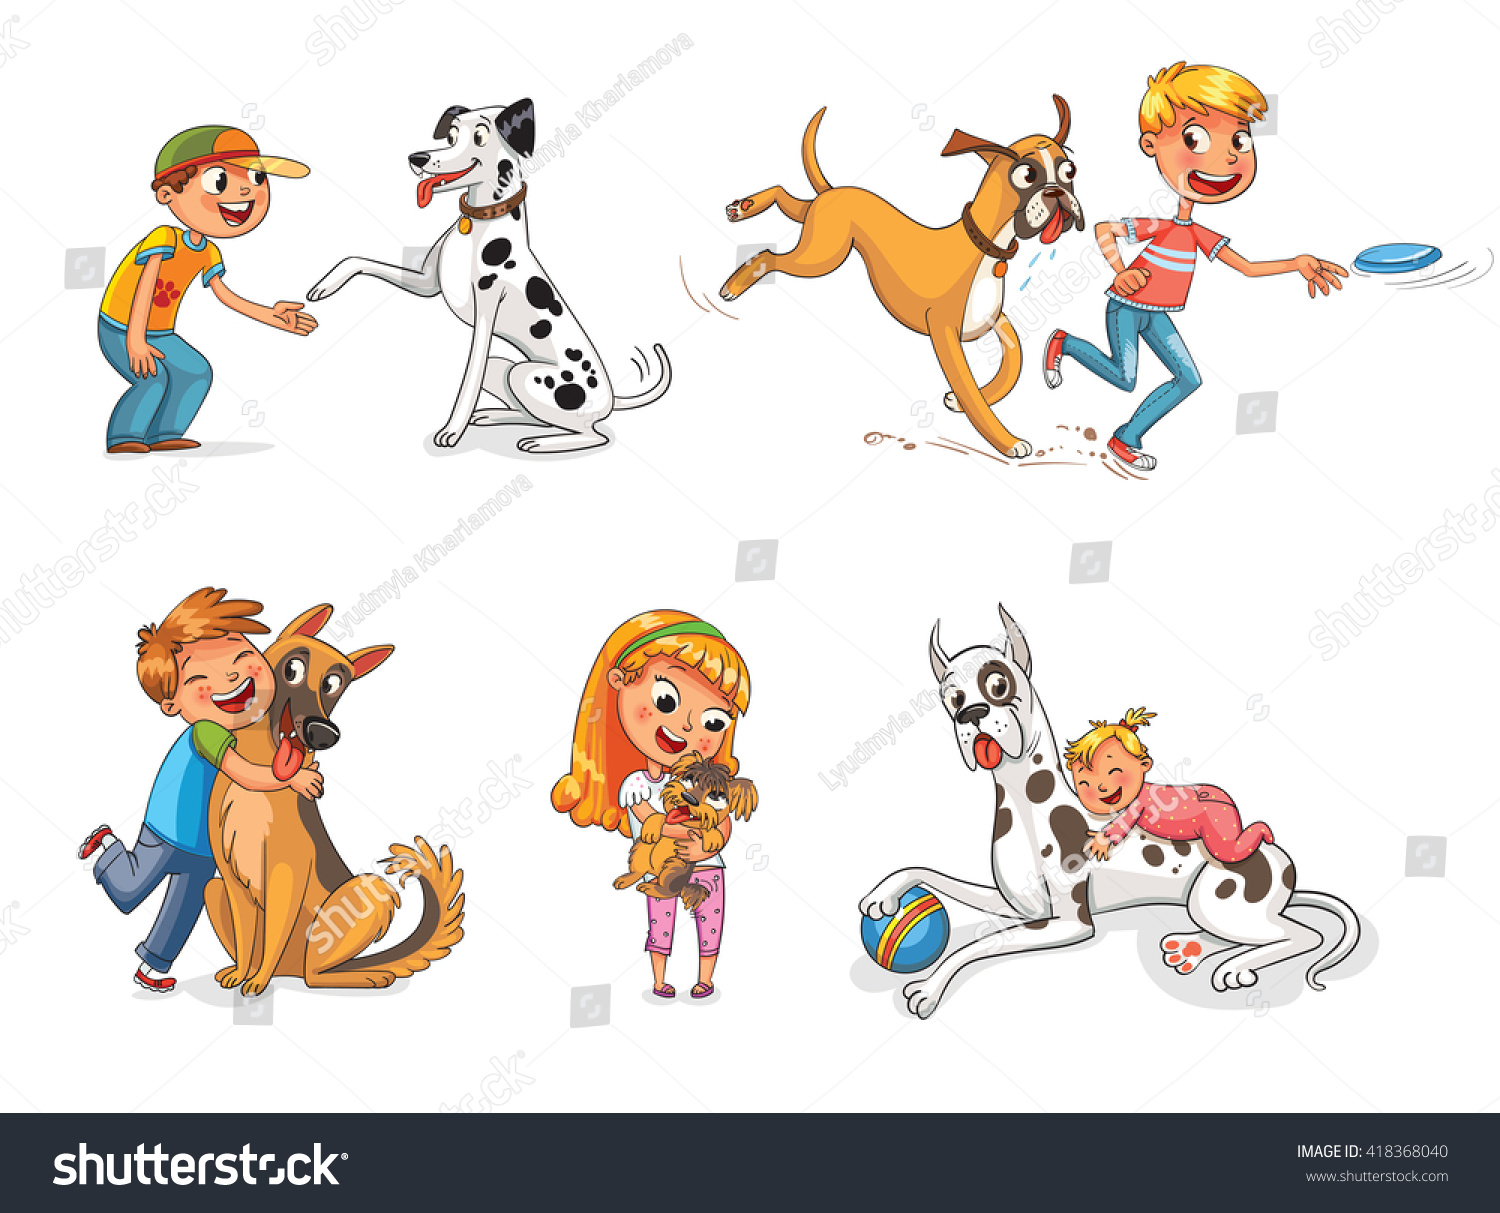 Cartoon dog stock photos images amp pictures shutterstock - Boxer Dog Playing With A Boy In A Frisbee